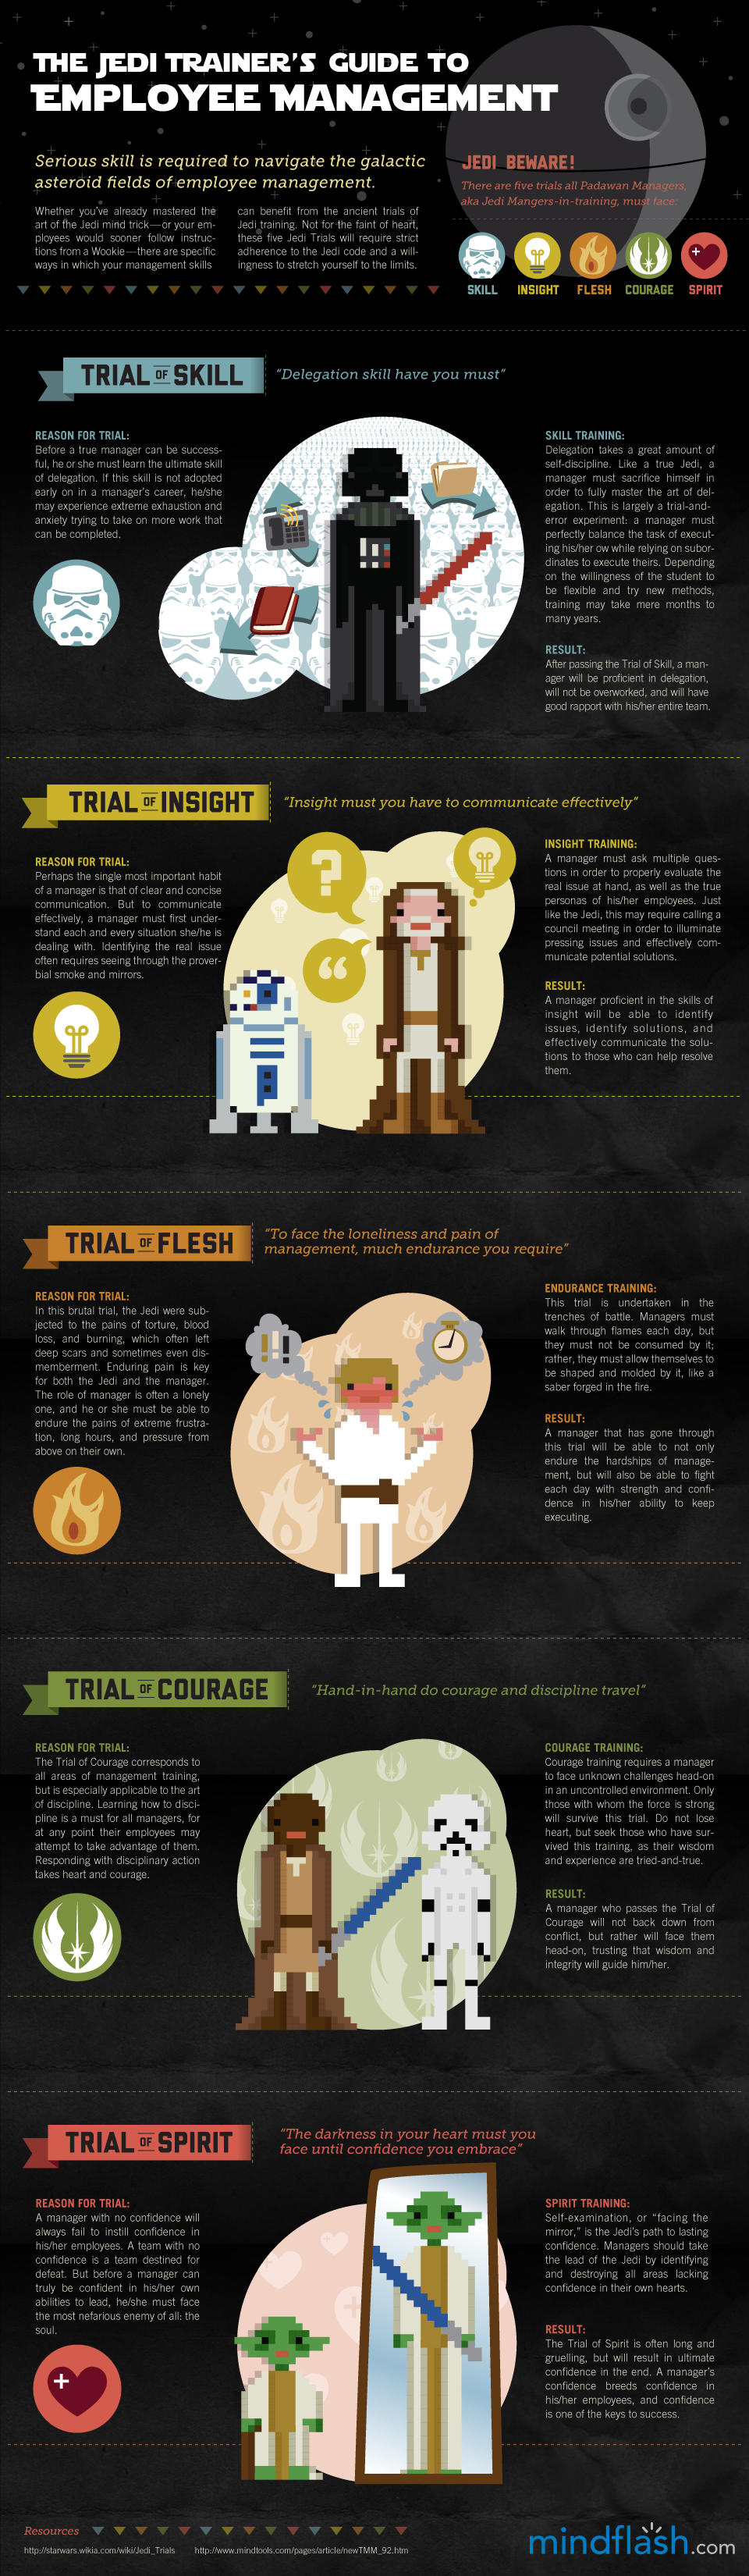 11.06.21 Jedi mindflash jmj 101 The Jedi Trainer's Guide To Employee Management [Infographic]